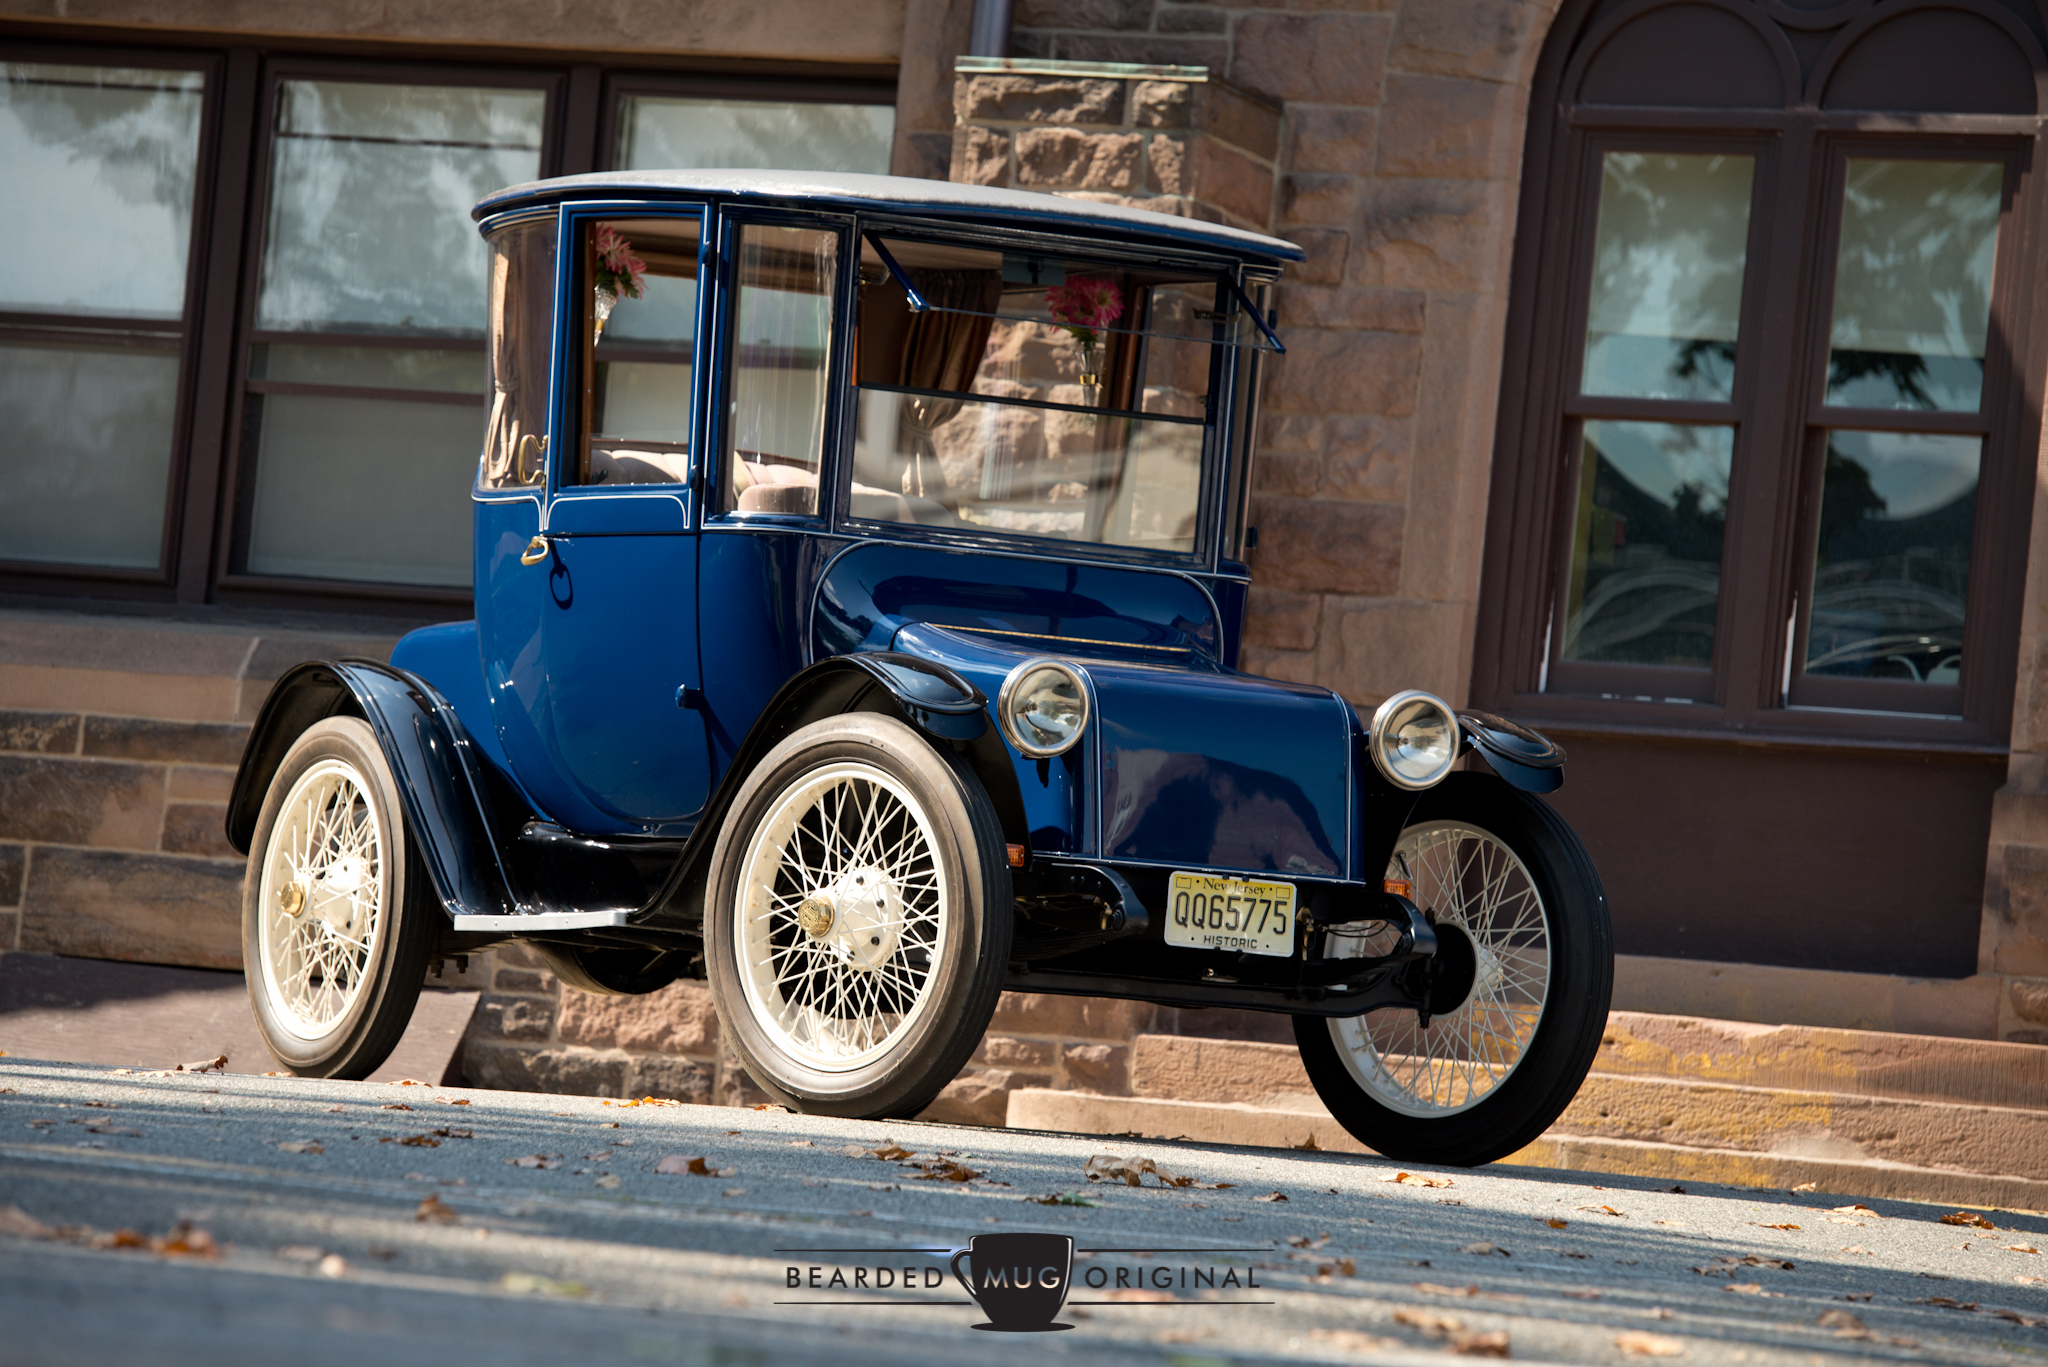 The size of the 1917 Detroit Electric Model 68 can't be fully appreciated until you're standing next to it. Its height accommodated for hats, so the roof was much taller than today's cars.